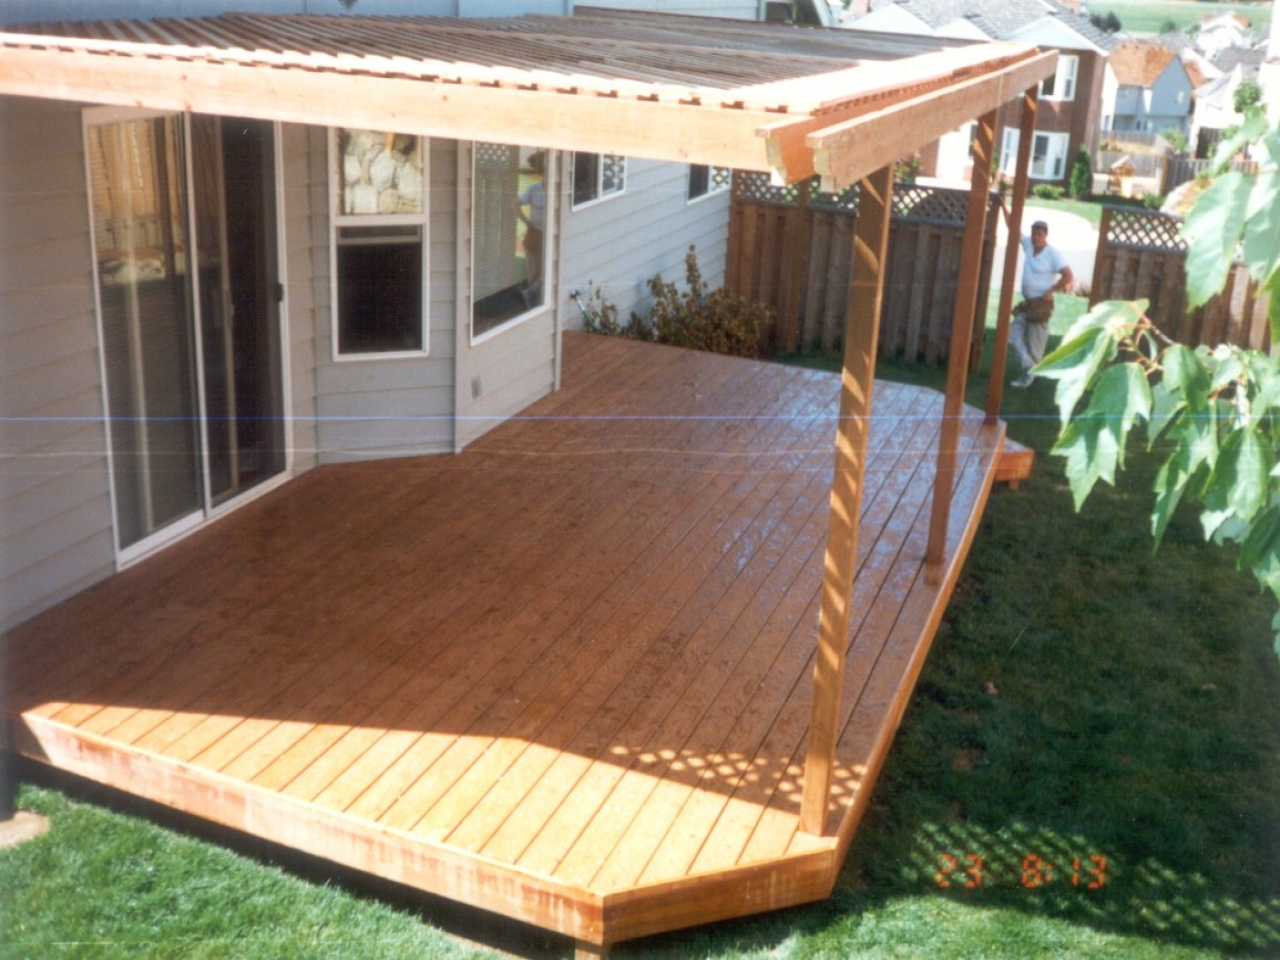 Wood Flat Roof Decks Flat Wood Deck Designs Ideas, picture ...